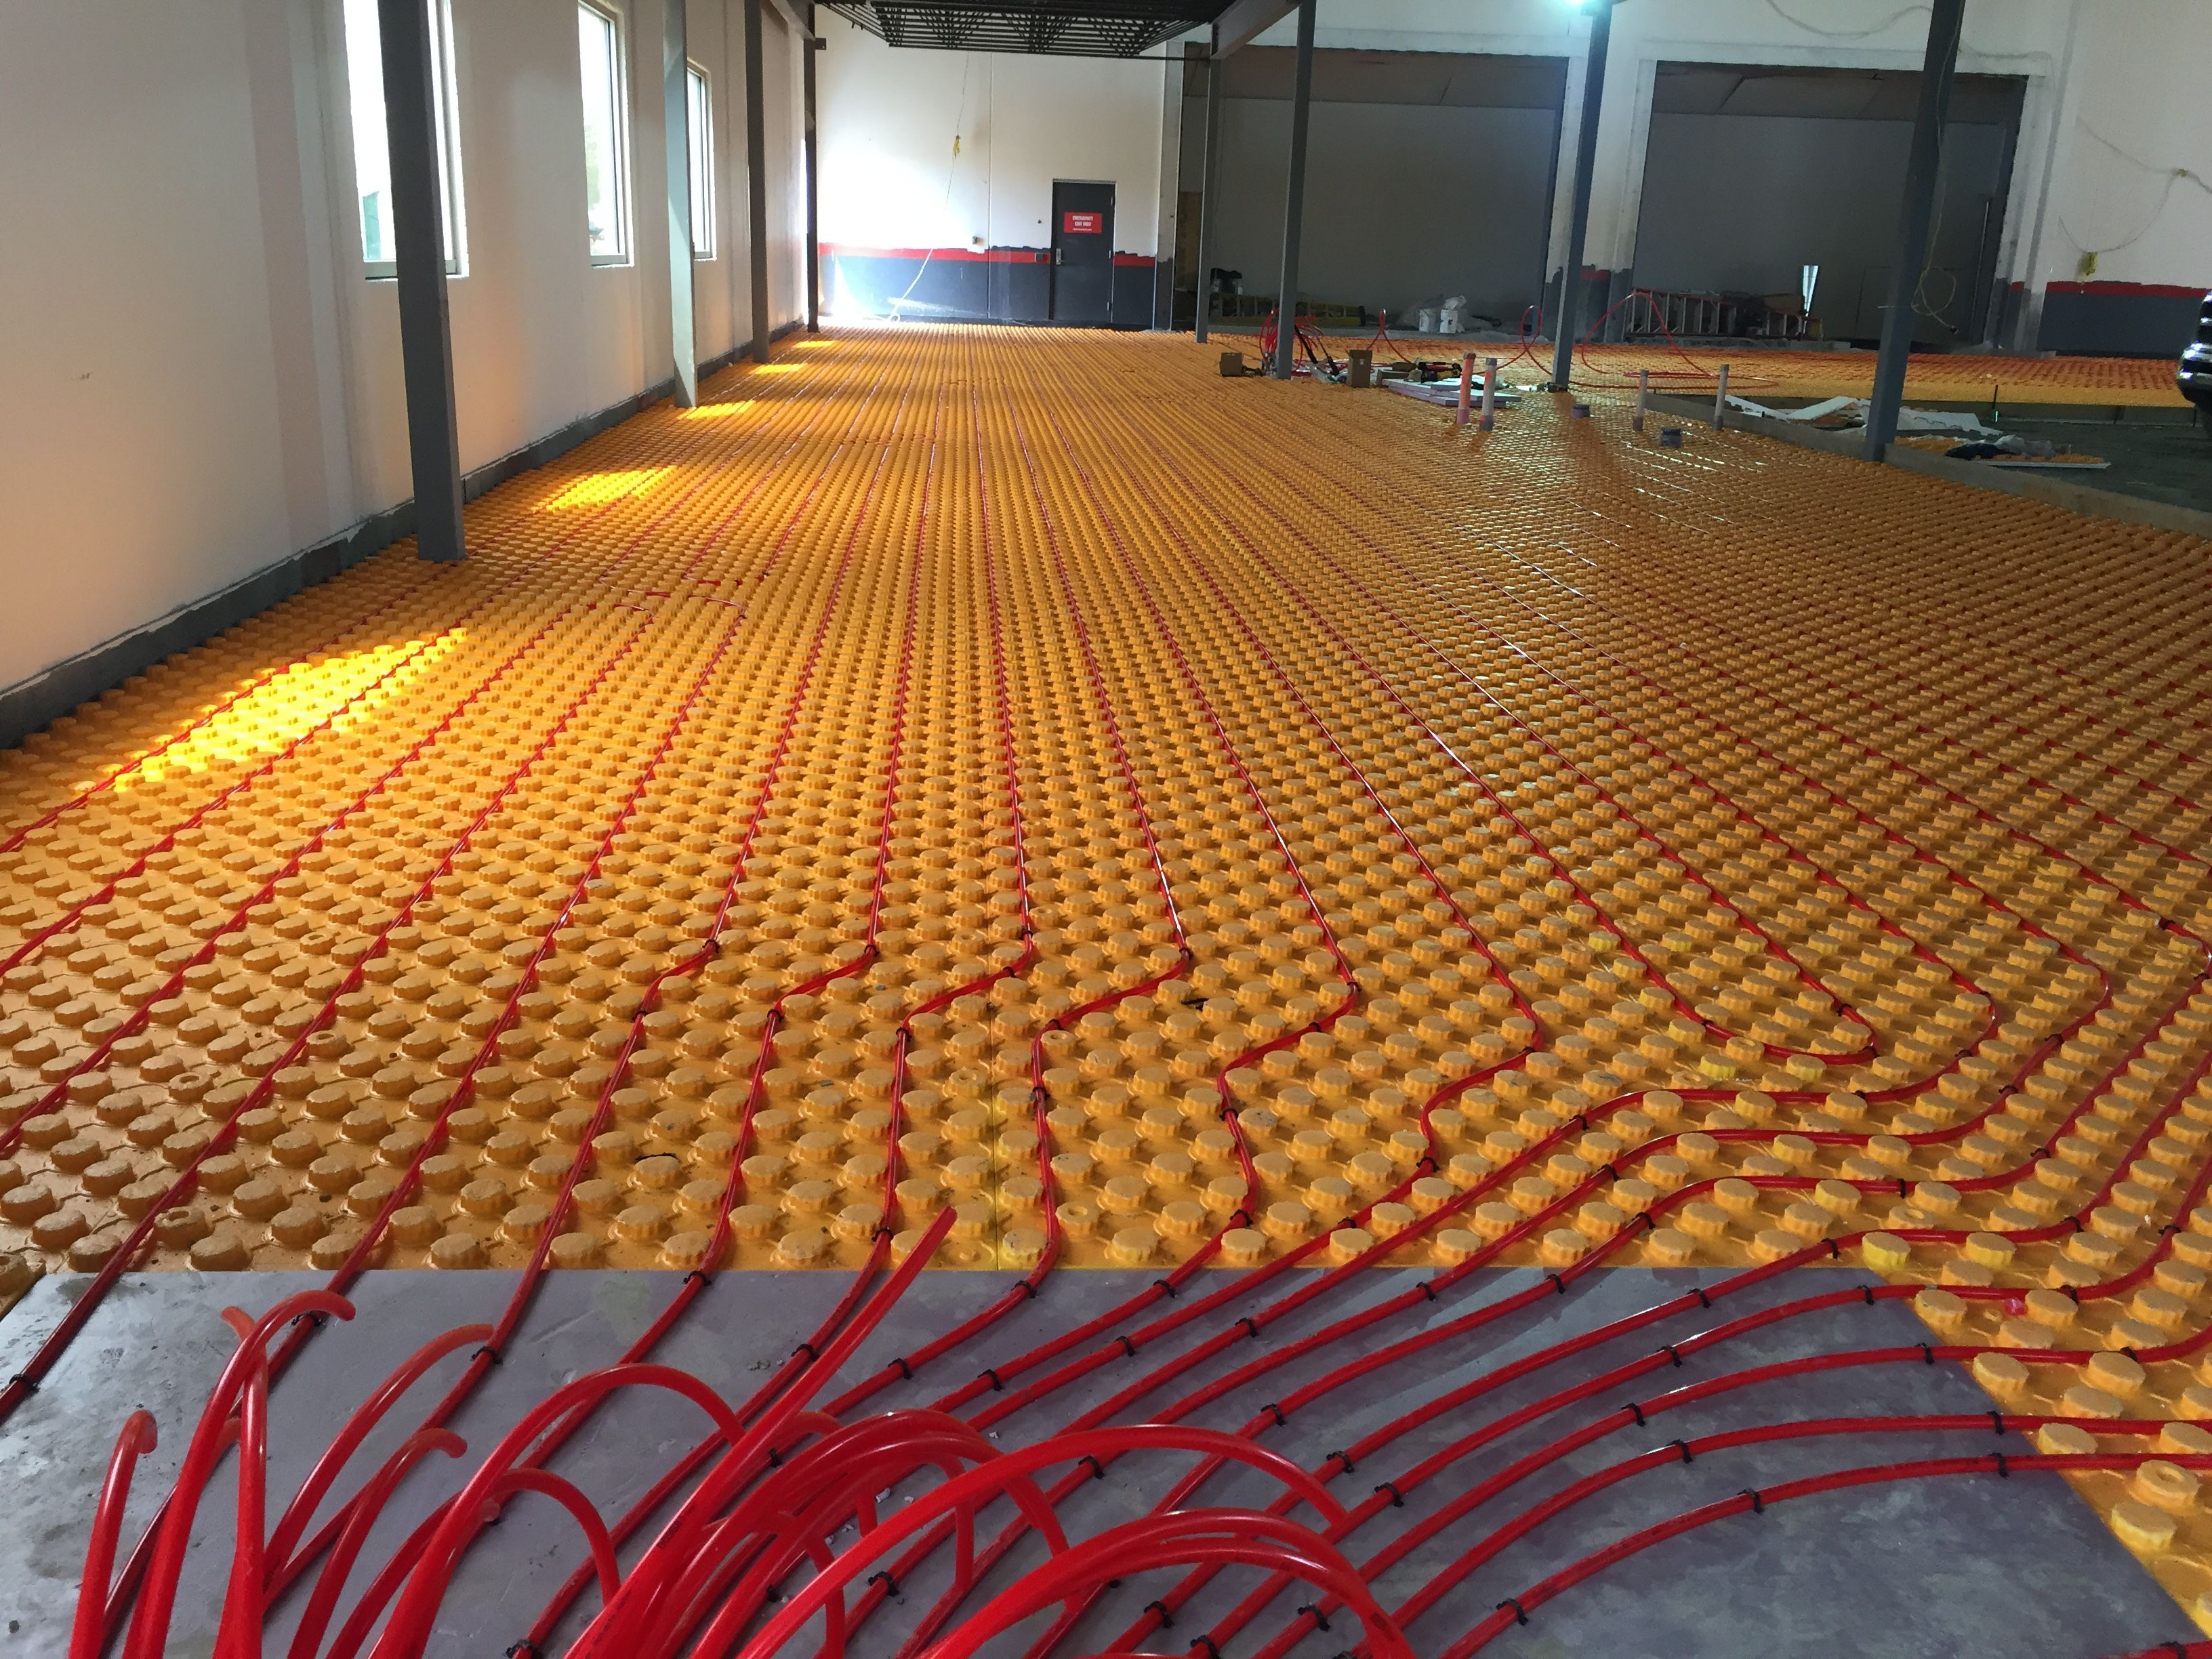 on heating service sitting snow melts pespisaco floor for flooring mother com installation climate heat orig and radiant panel child panels interior